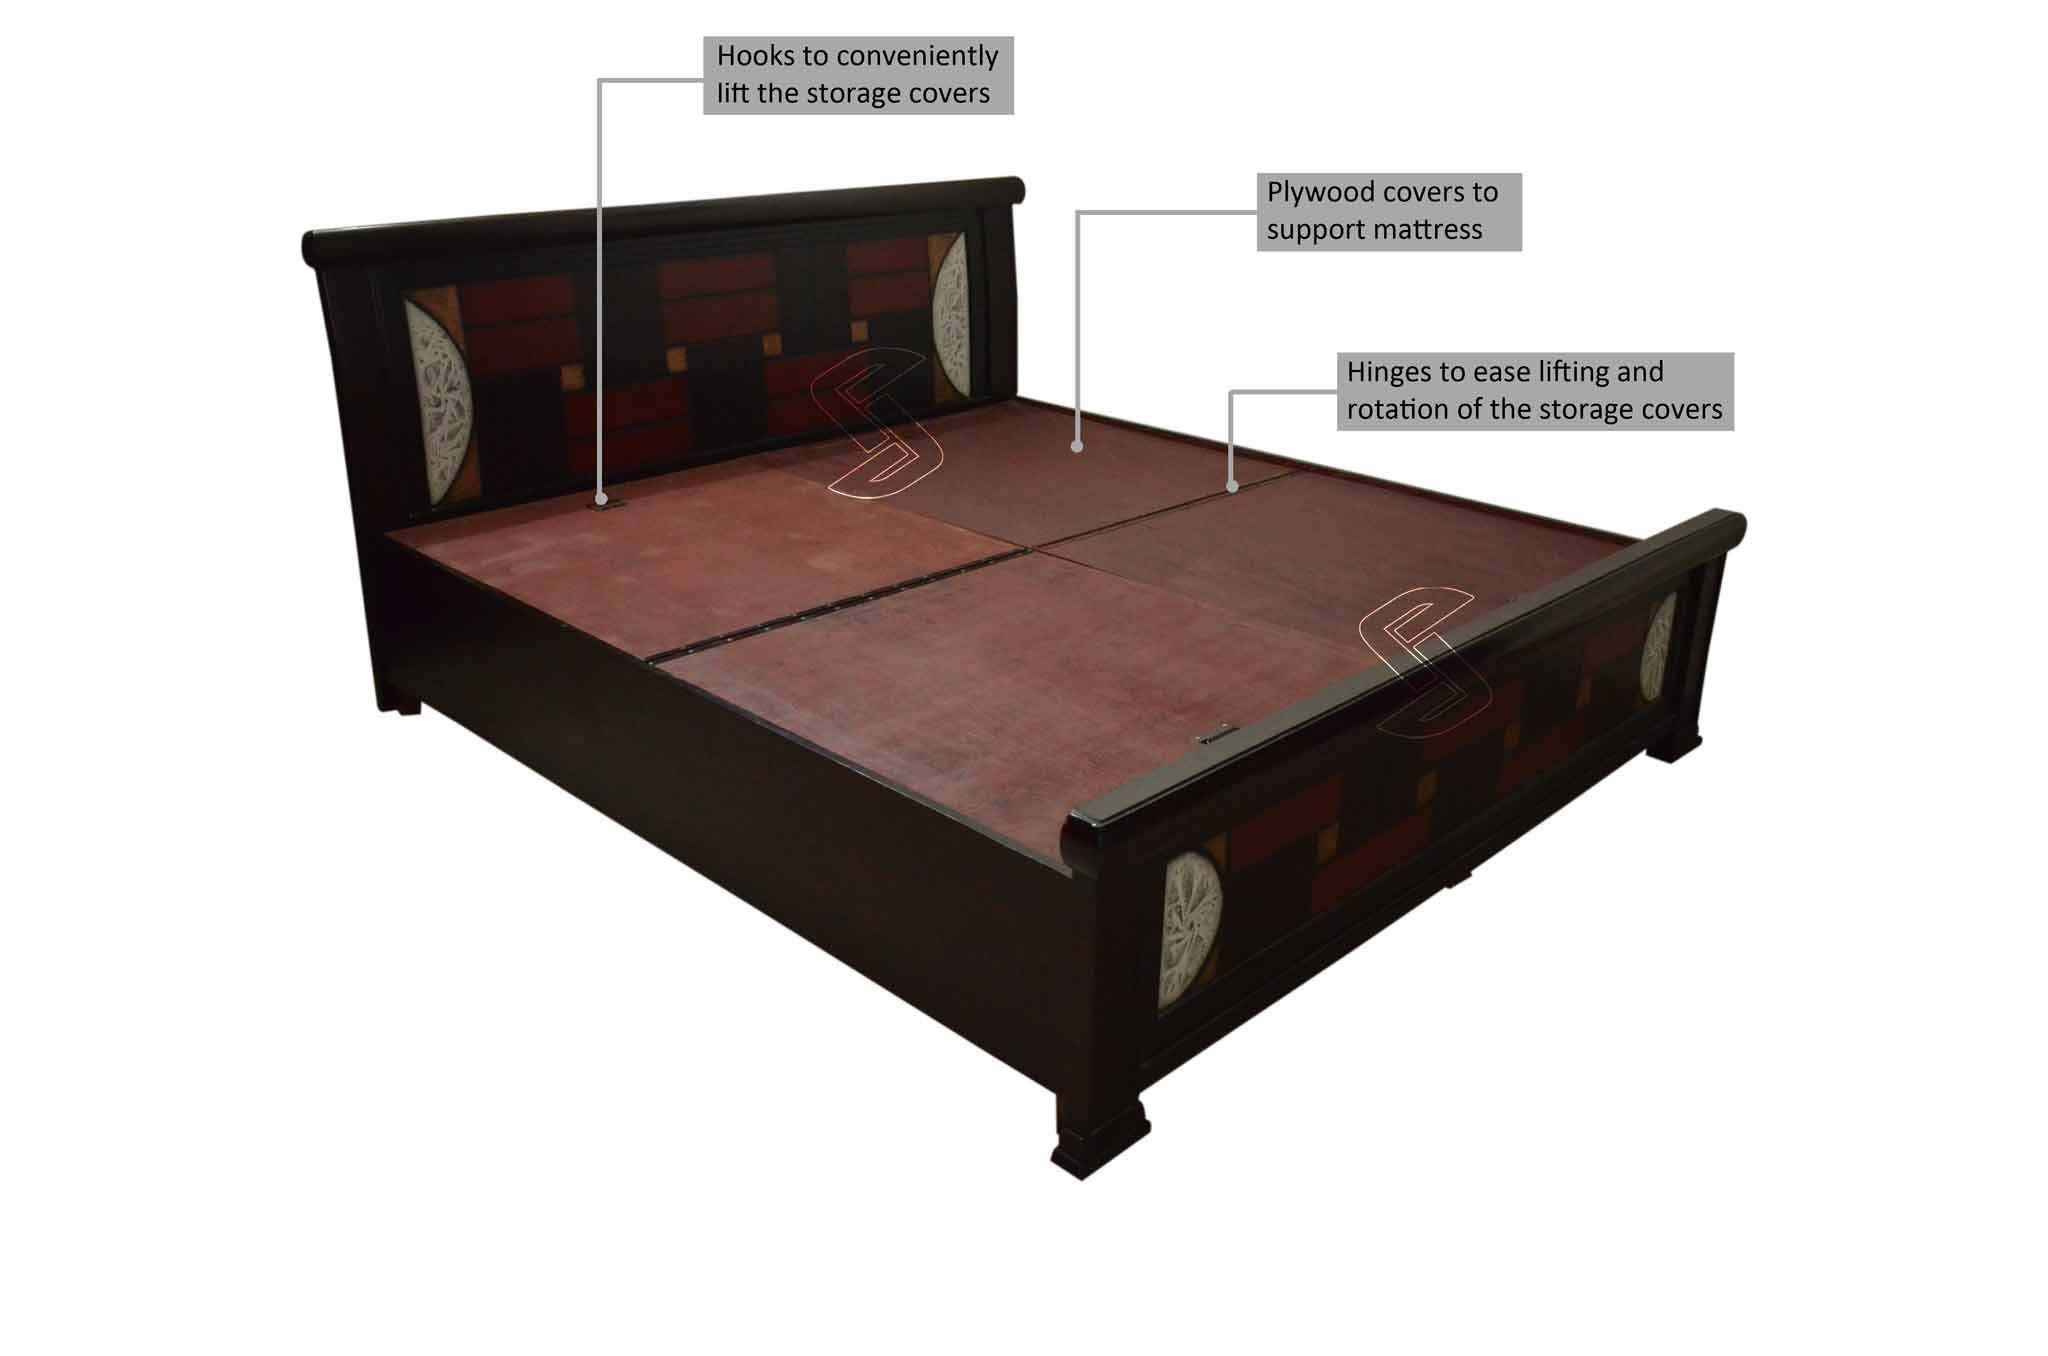 Stamf King Bed With Storage Beds Online In Hyderabad